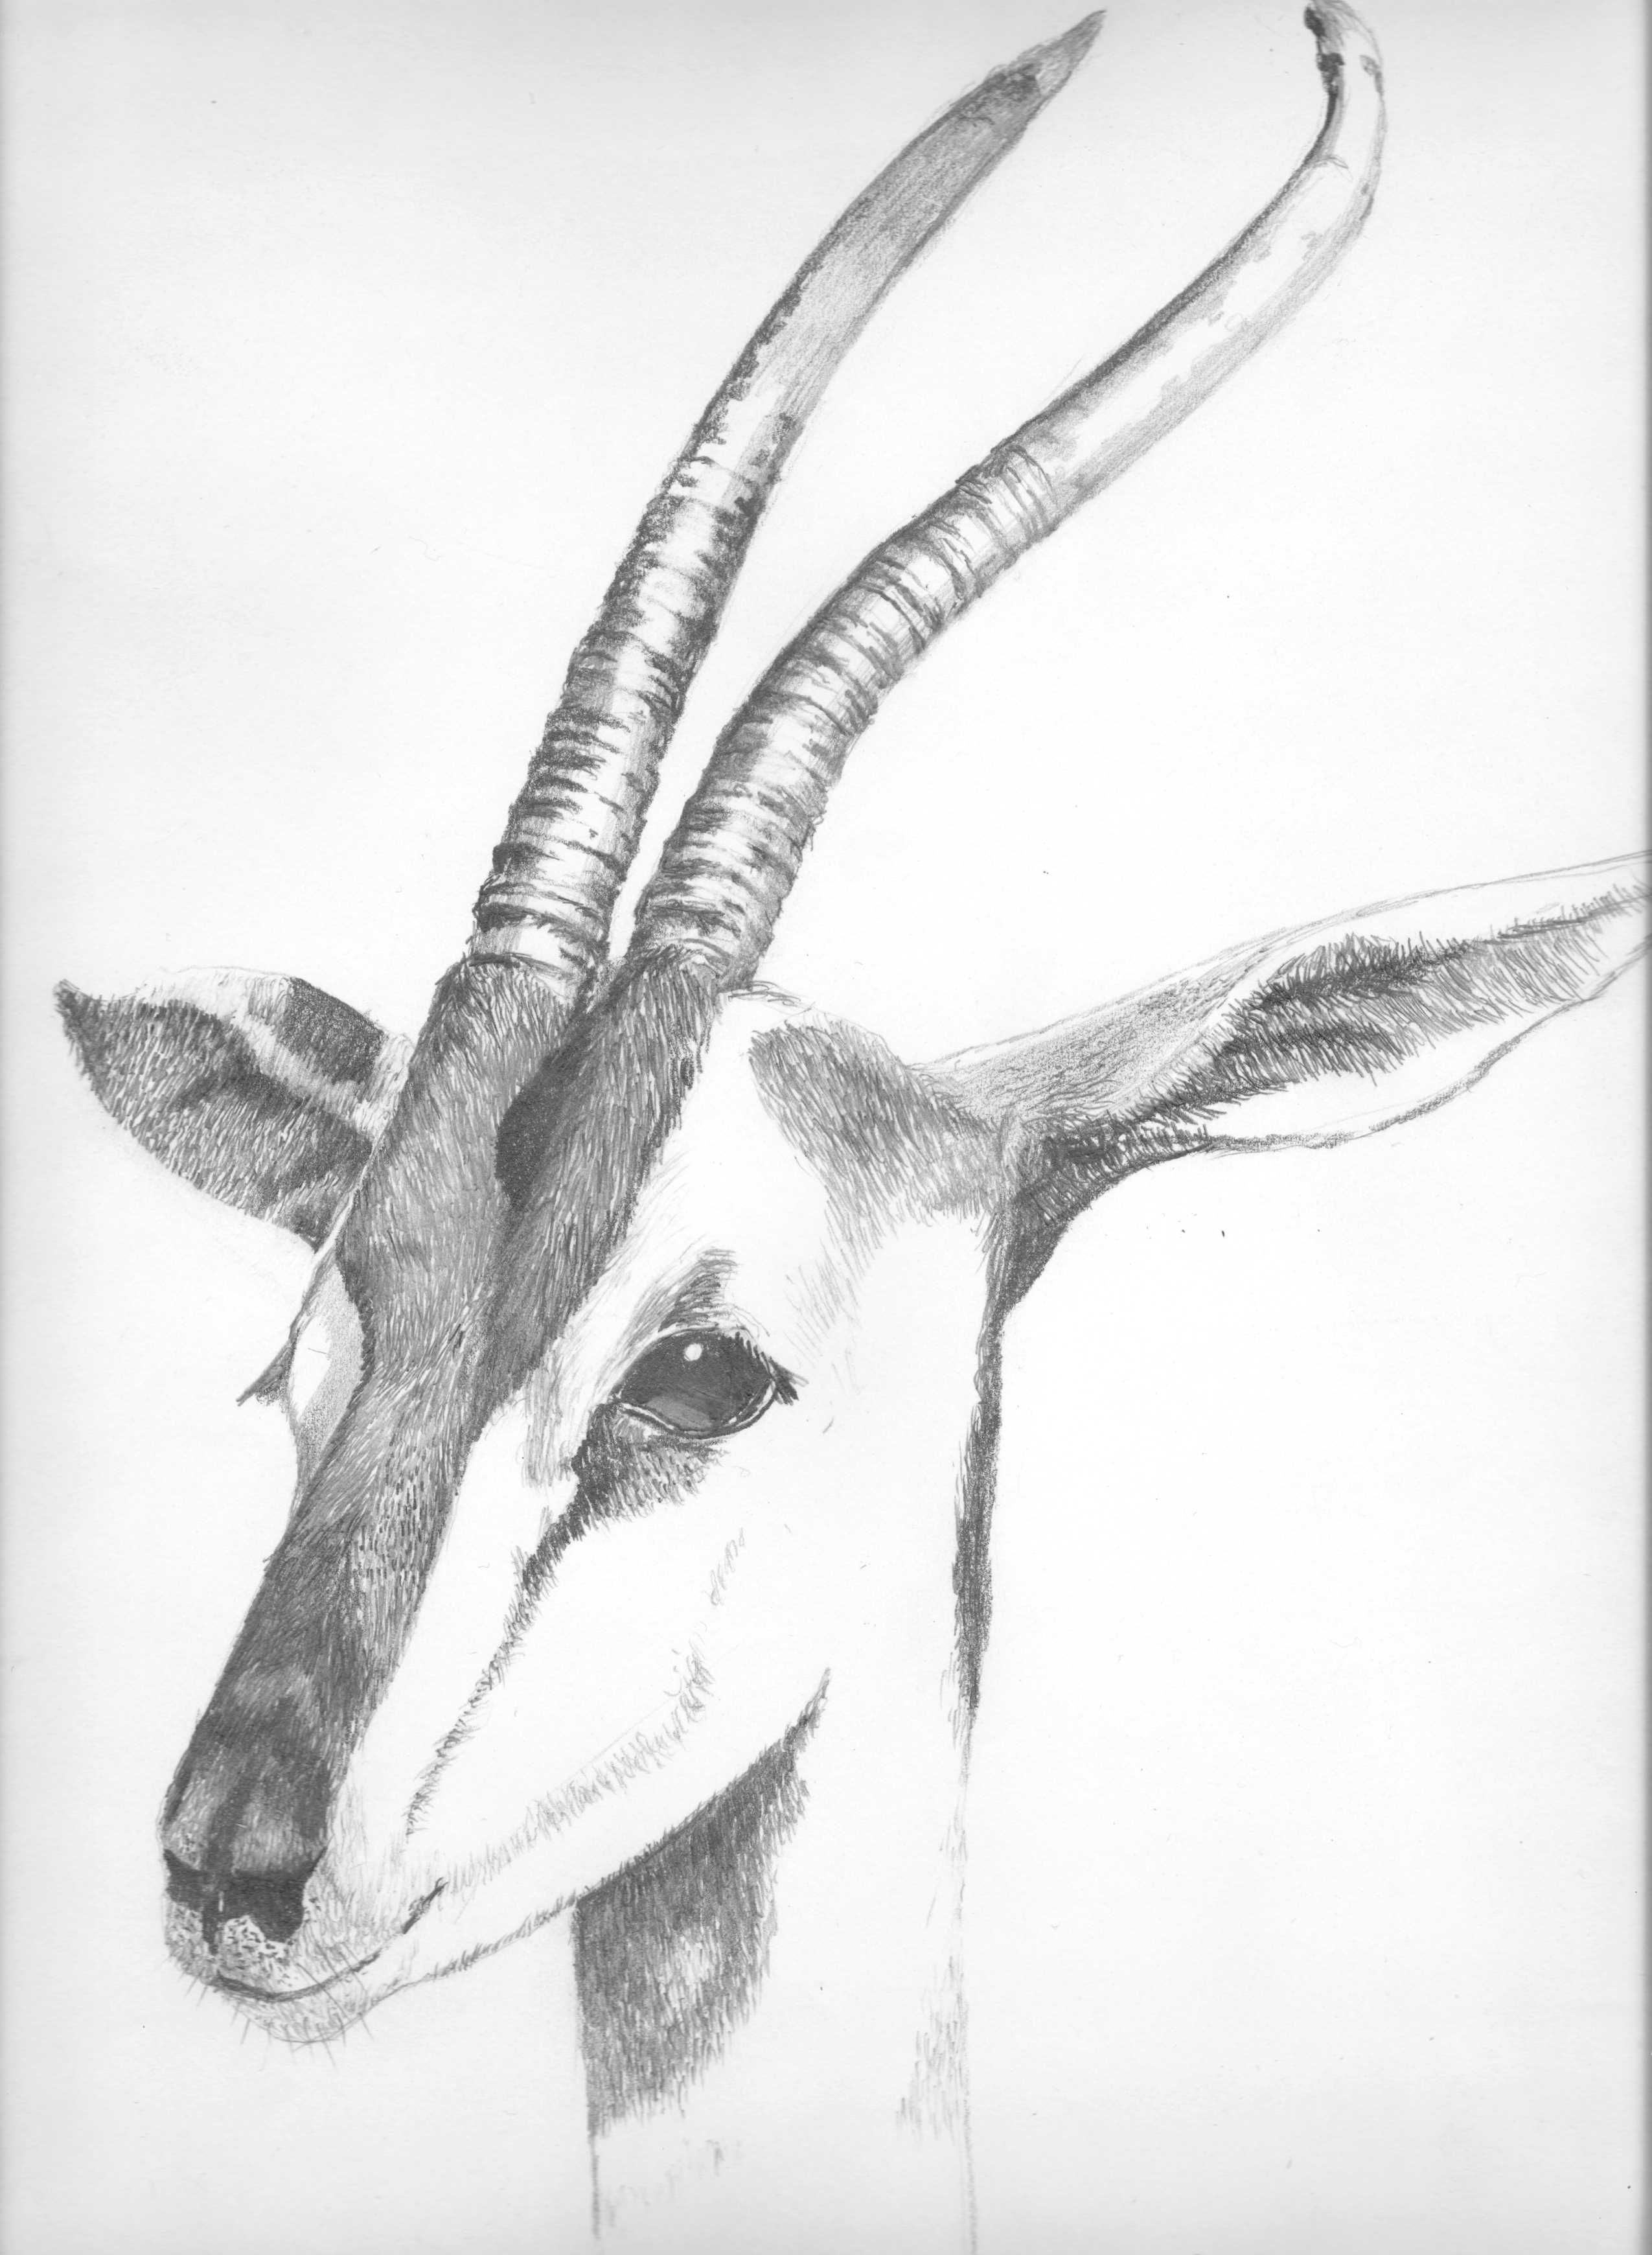 pencil drawing of a gazelle i photographed at the san diego zoo